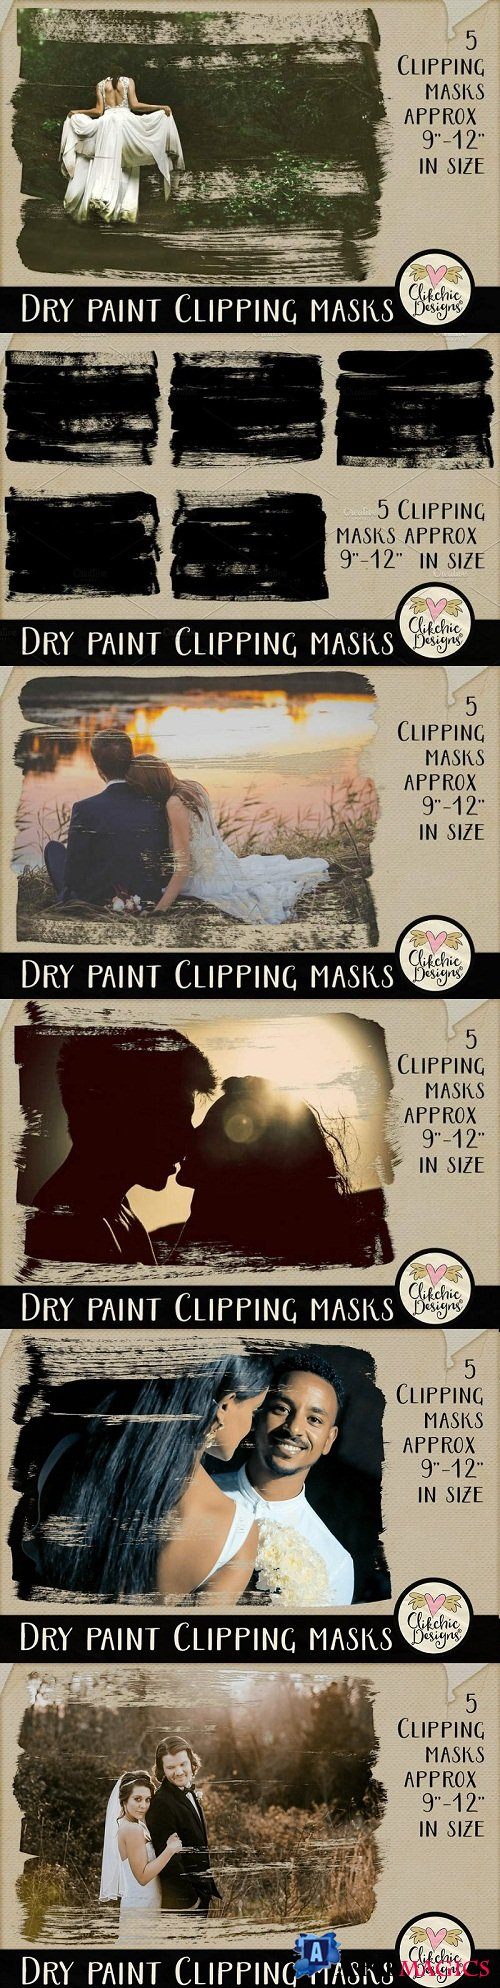 Dry Paint Photoshop Clipping Masks 2347811